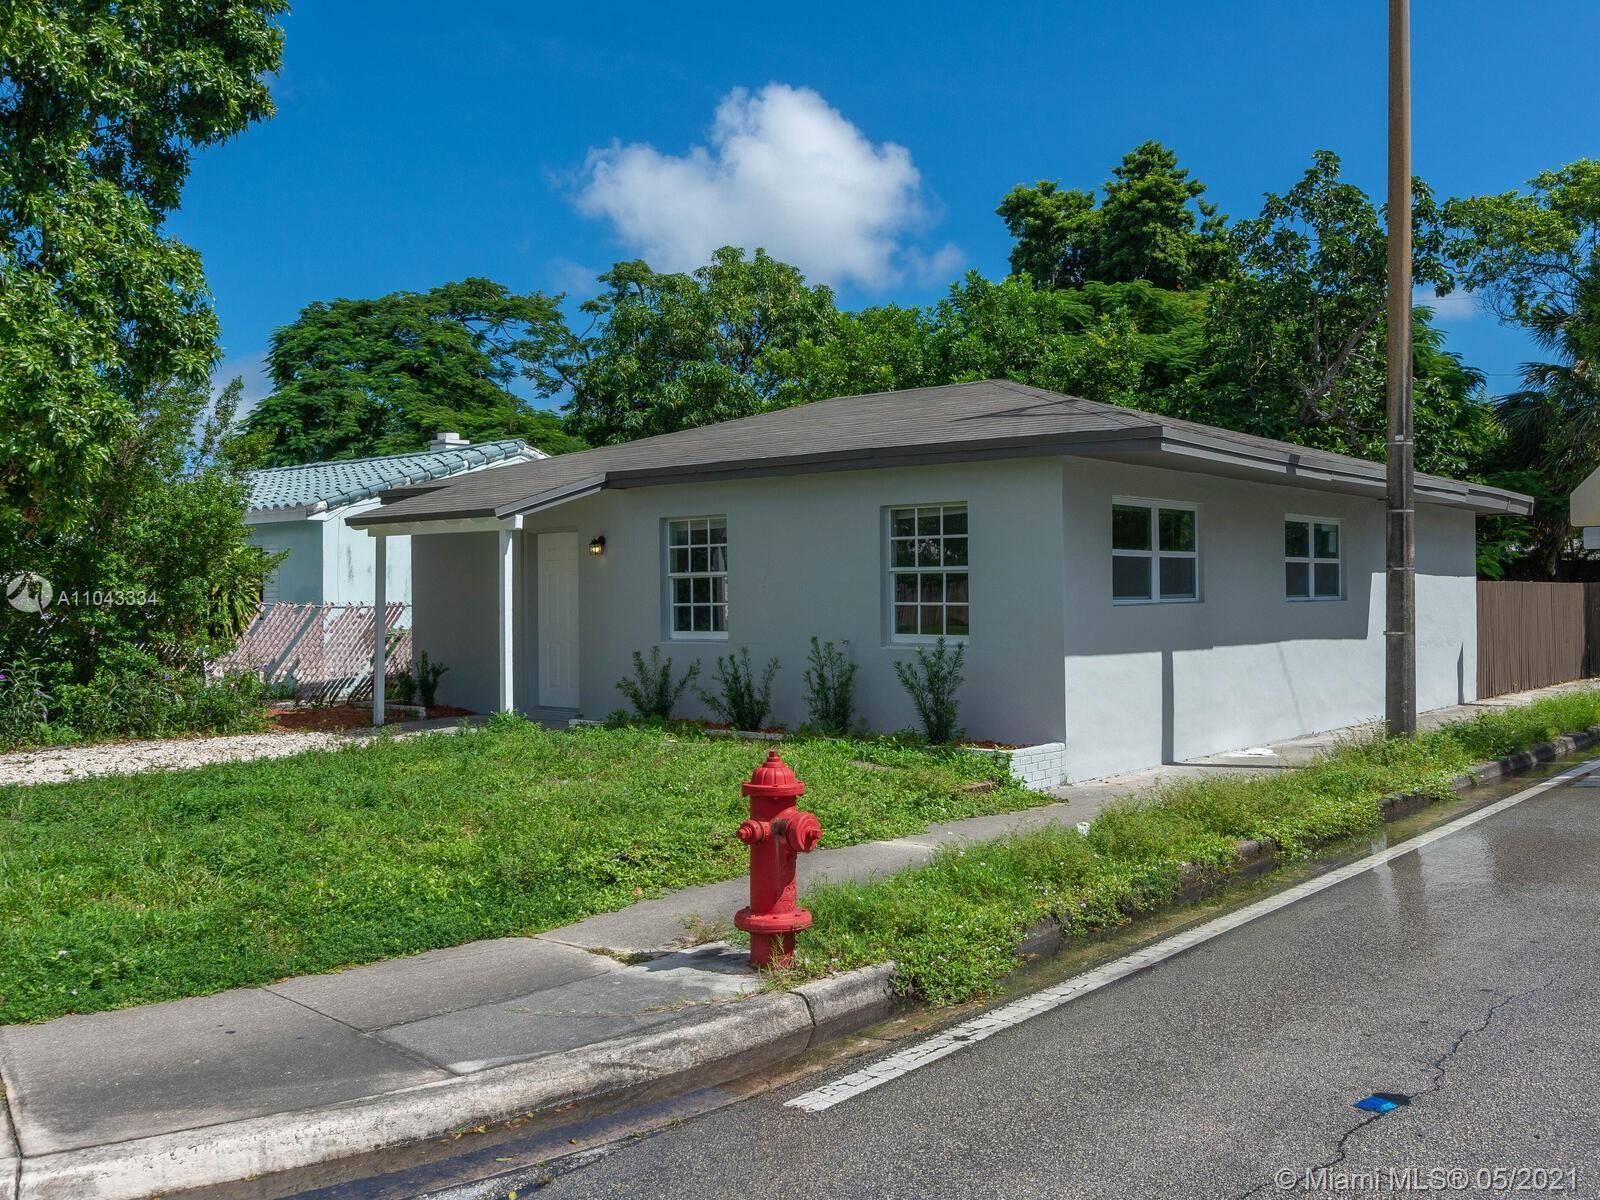 Photo of 1300 NE 1st Ave, Fort Lauderdale, FL 33304 (MLS # A11043334)